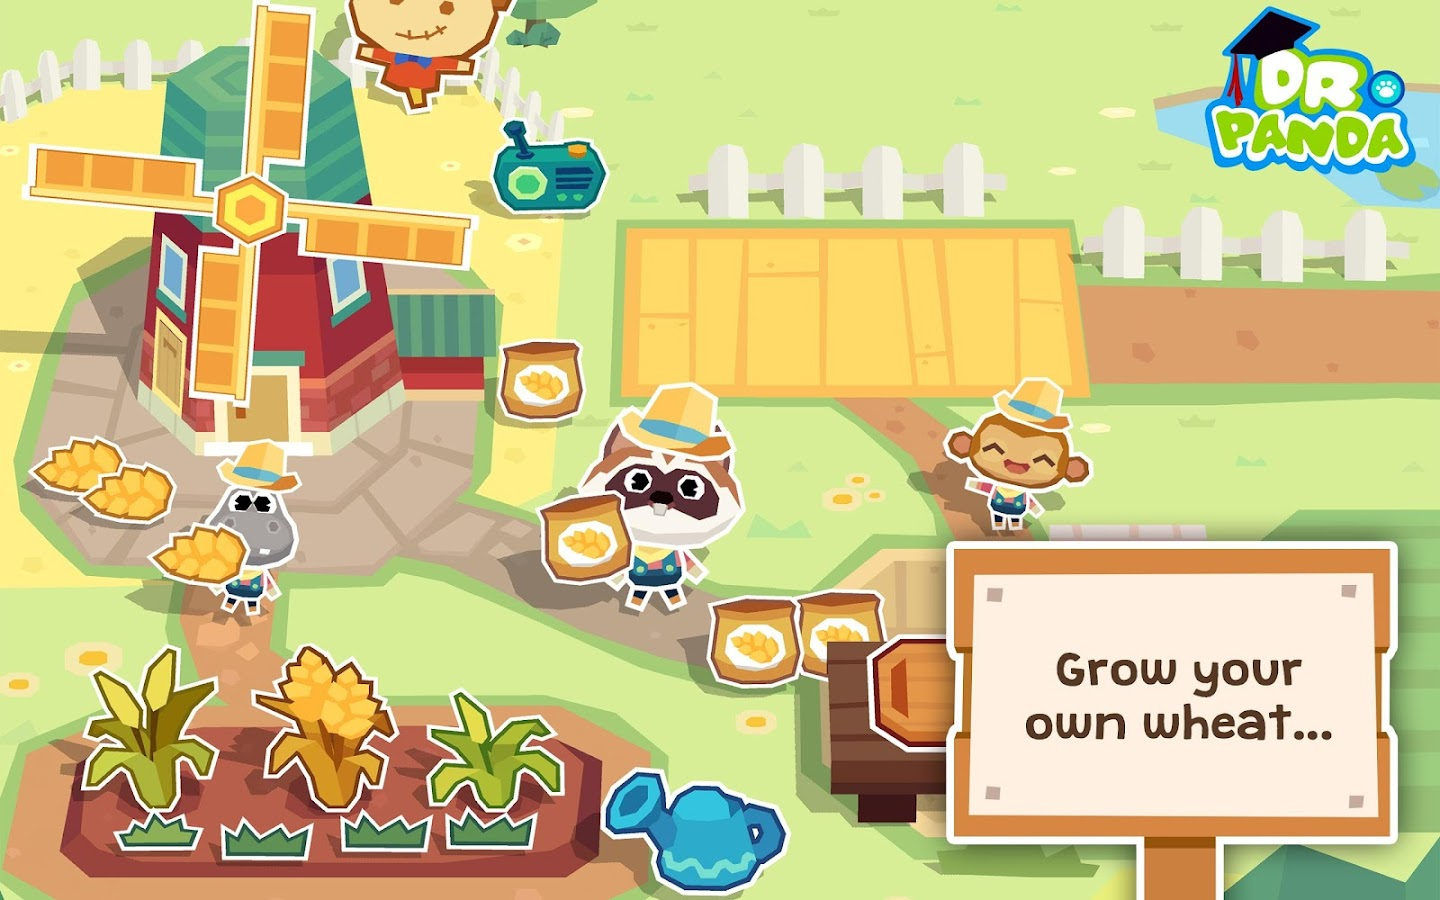 Dr. Panda Farm Screenshot 7